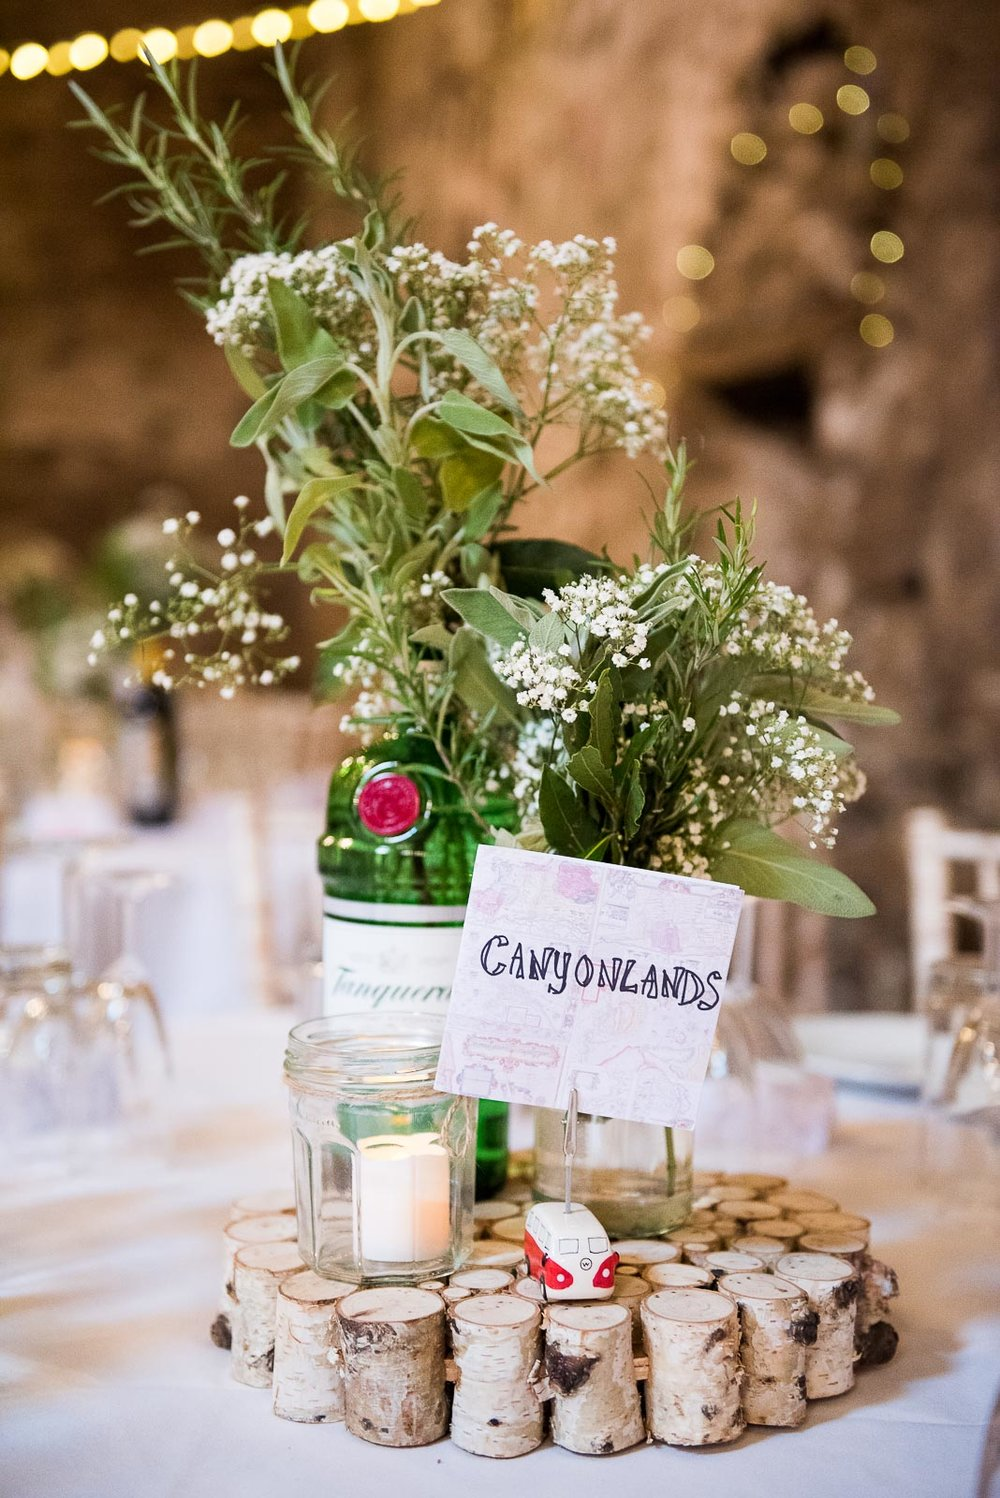 Boho style table decor for a September wedding © Jessica Grace Photography